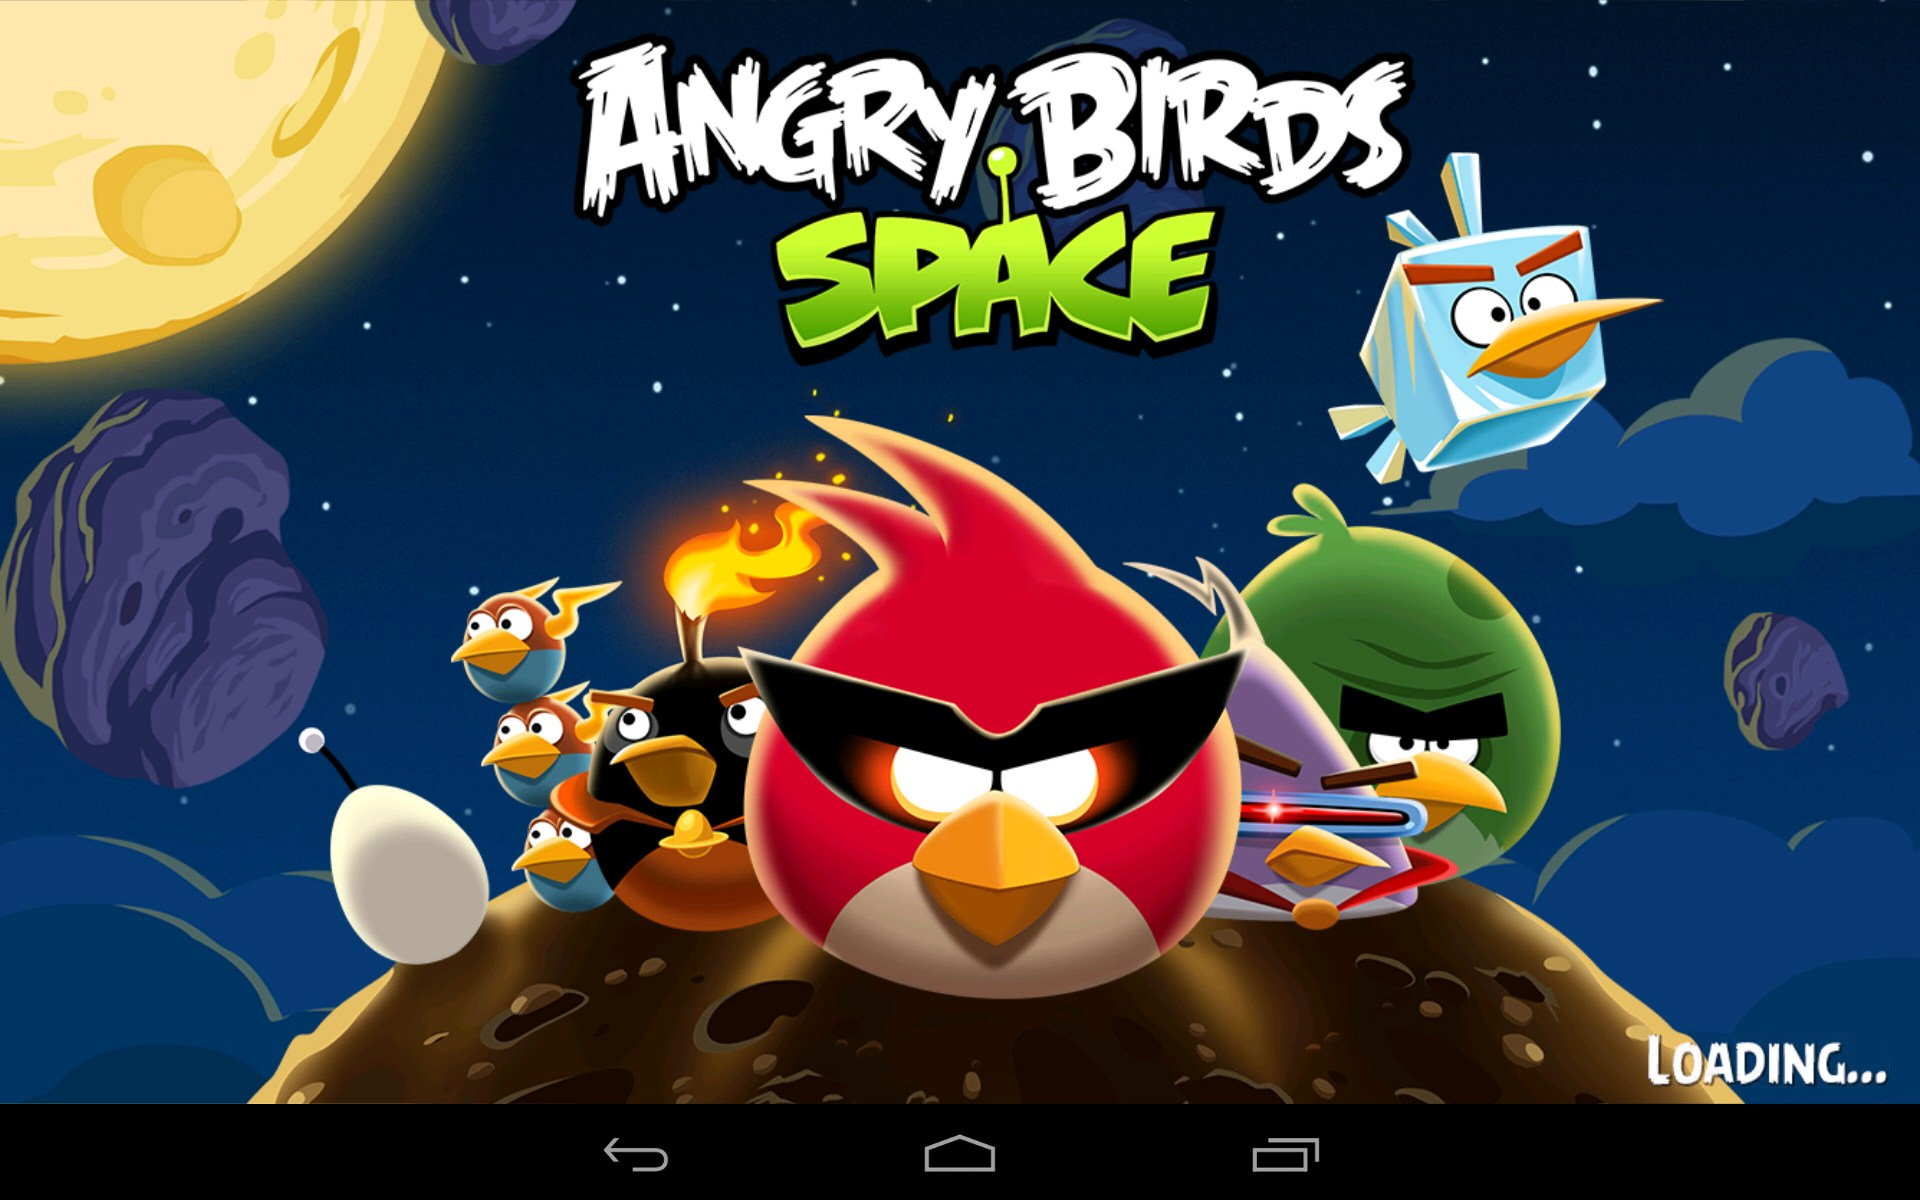 android 2.2 games free download